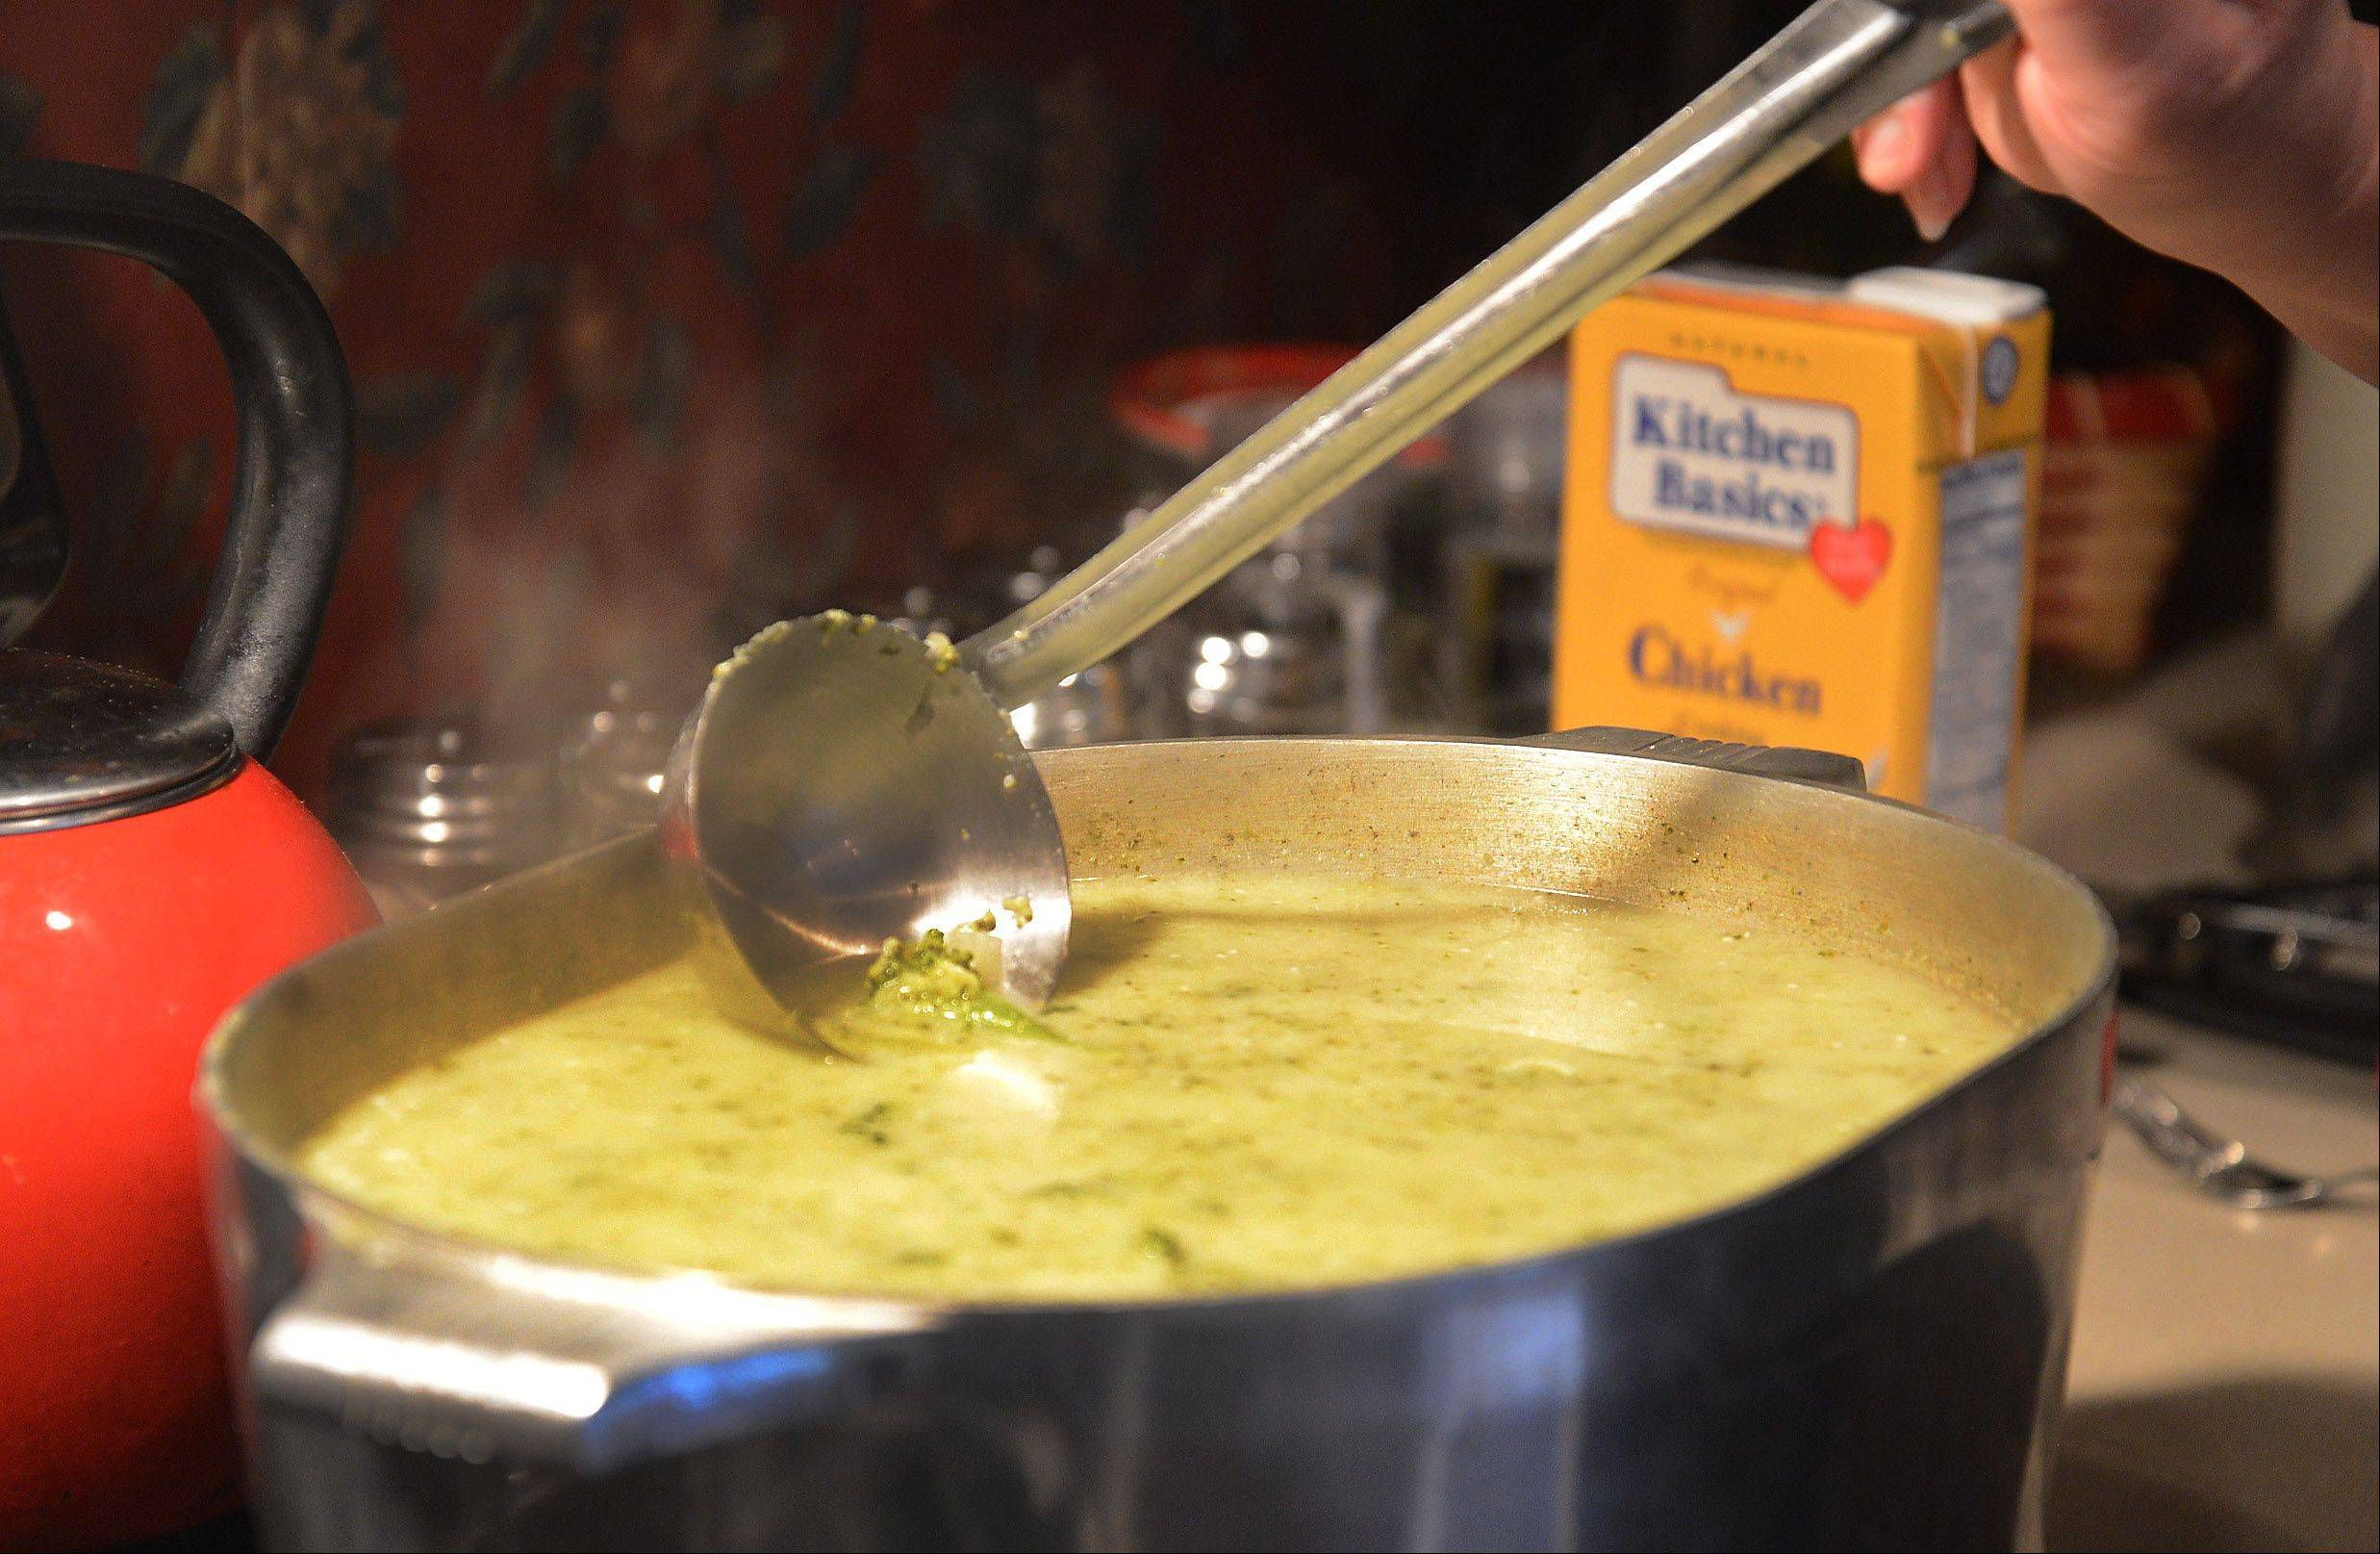 If it's winter, that means cream of broccoli soup is simmering on the stove at Patty Nicpon's Arlington Heights home.